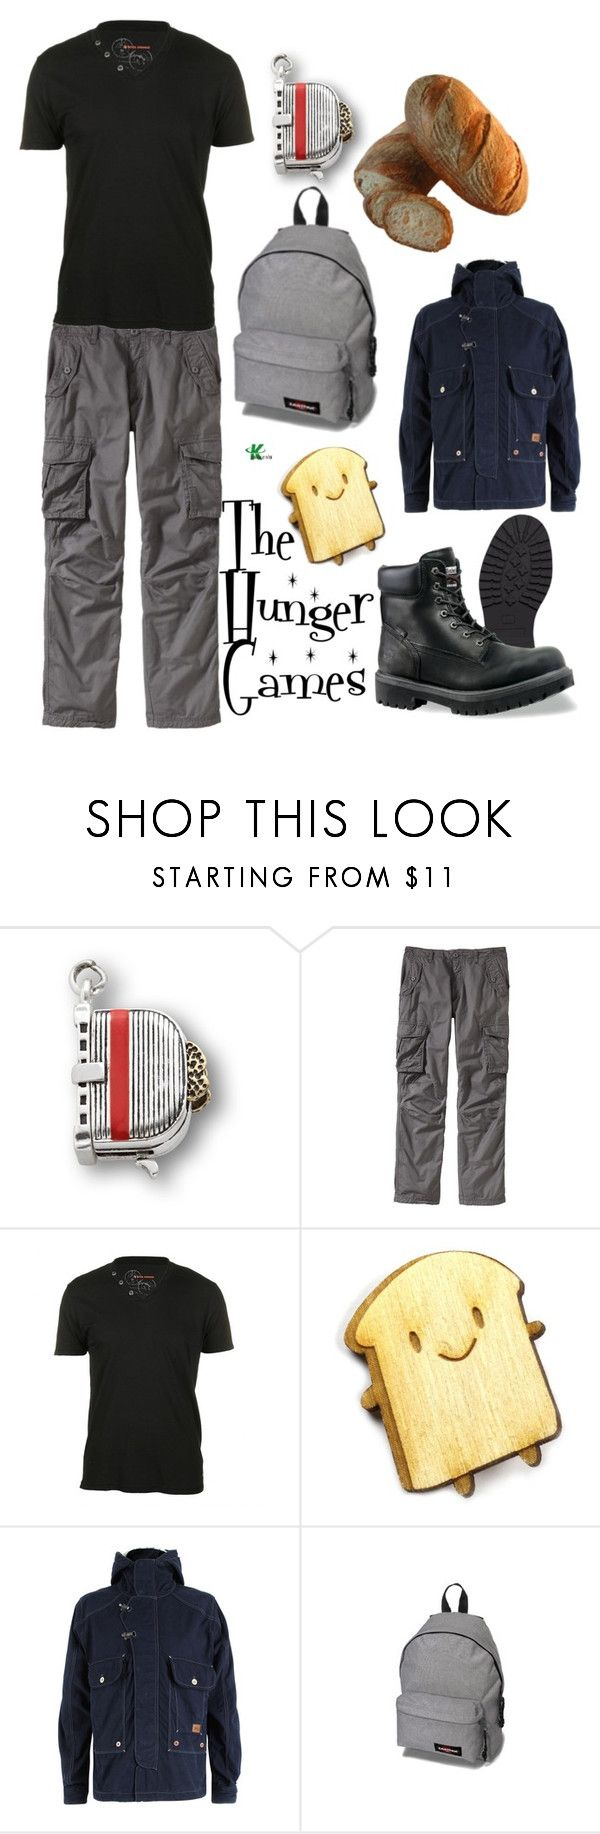 """The Hunger Games"" by wearwhatyouwatch ❤ liked on Polyvore featuring FOSSIL, Old Navy, BOSS Orange, Asking For Trouble, mel, Eastpak, combat boots, menswear inspired and the hunger games"